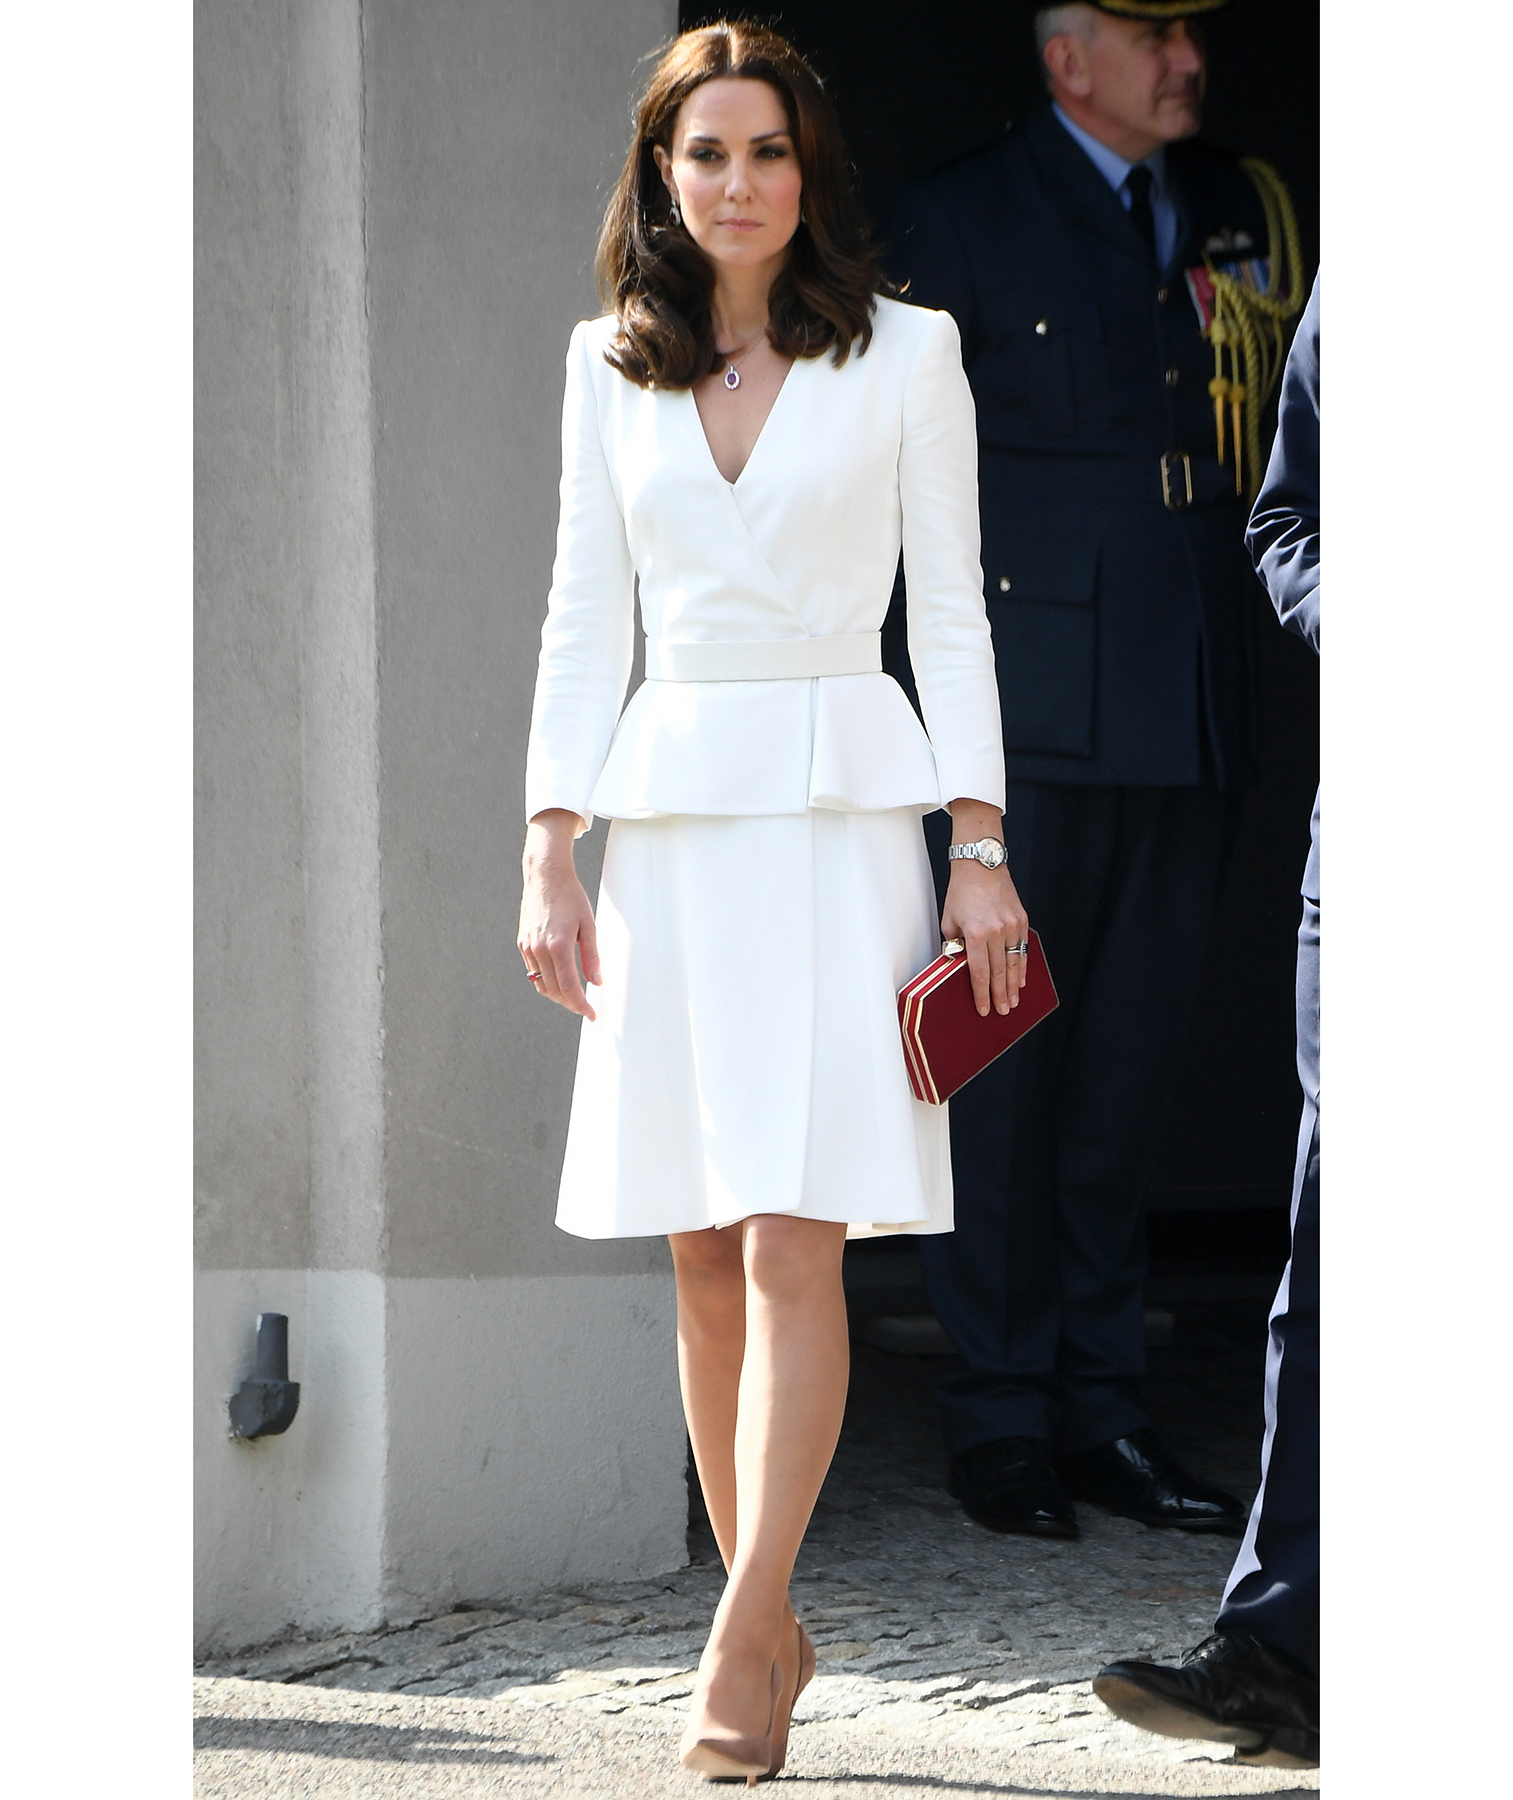 Princess Kate in white suit